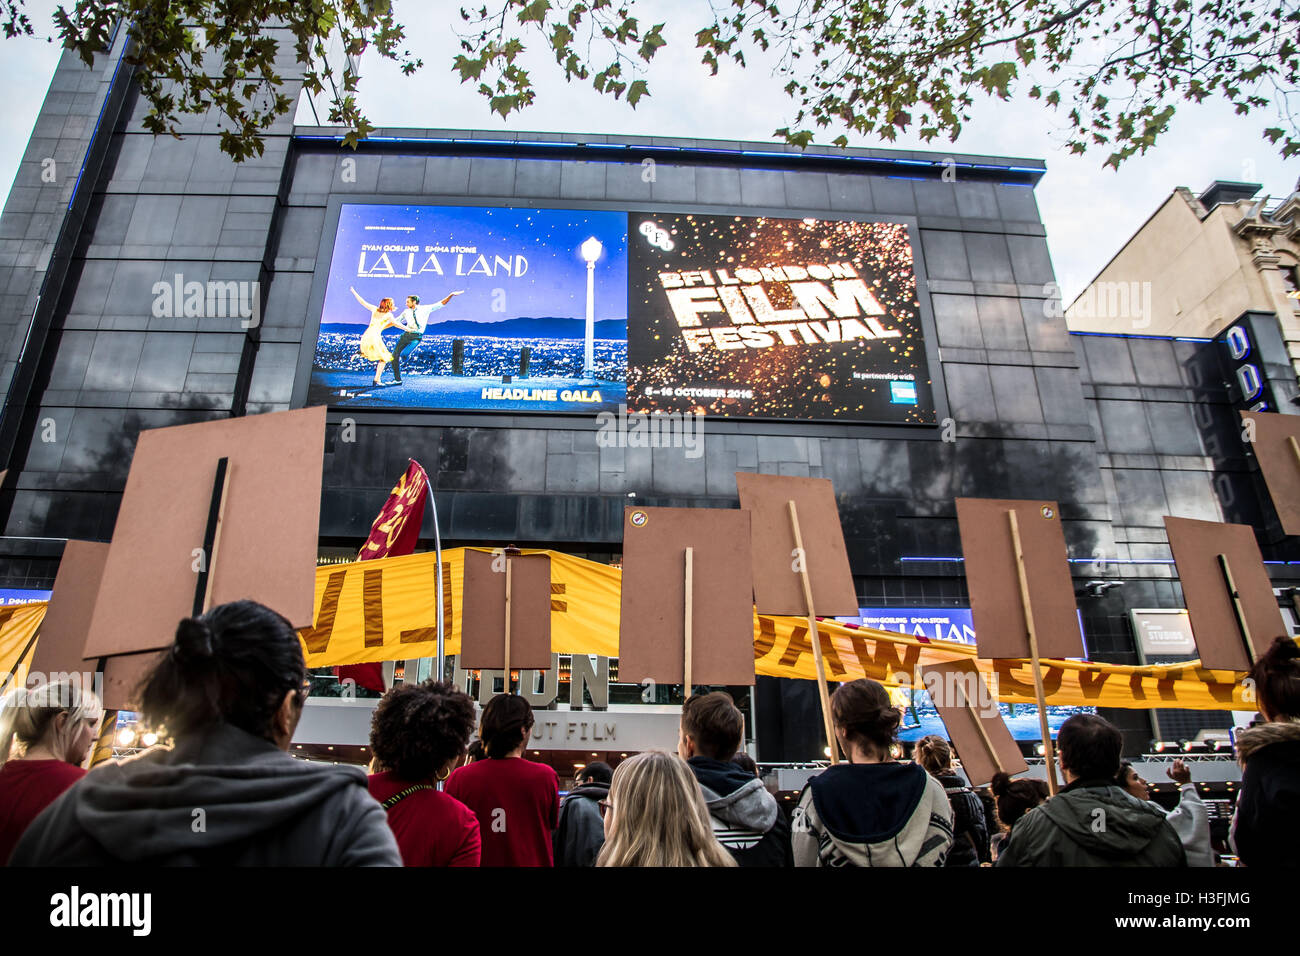 London, UK. 07th Oct, 2016. Ritzy Cinema workers disrupted the red carpet screening of the film 'La La Land' - Stock Image